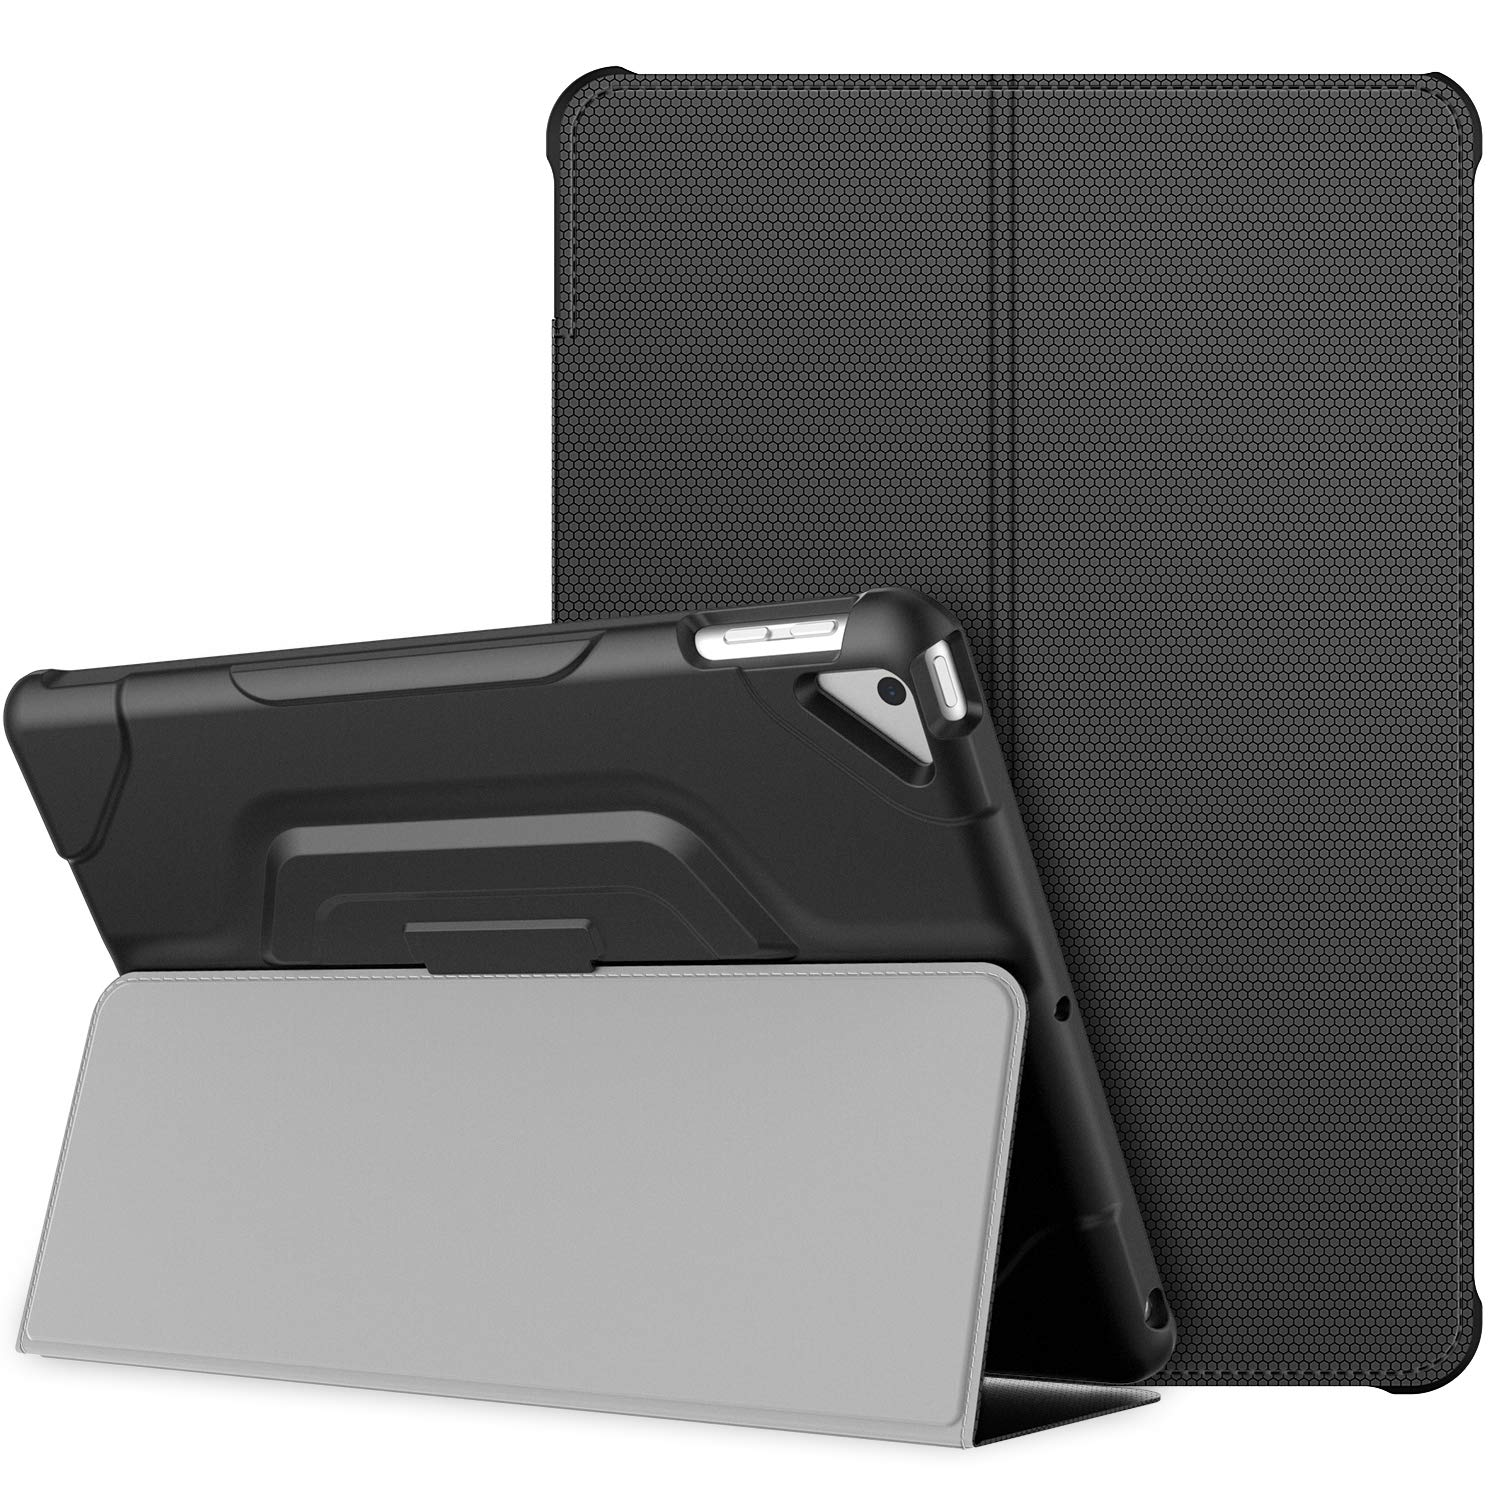 JETech Case for Apple iPad 7 (10.2-Inch, 2019 Model, 7th Generation), Double-fold Stand with Shockproof TPU Back Cover, Auto Wake/Sleep, Black